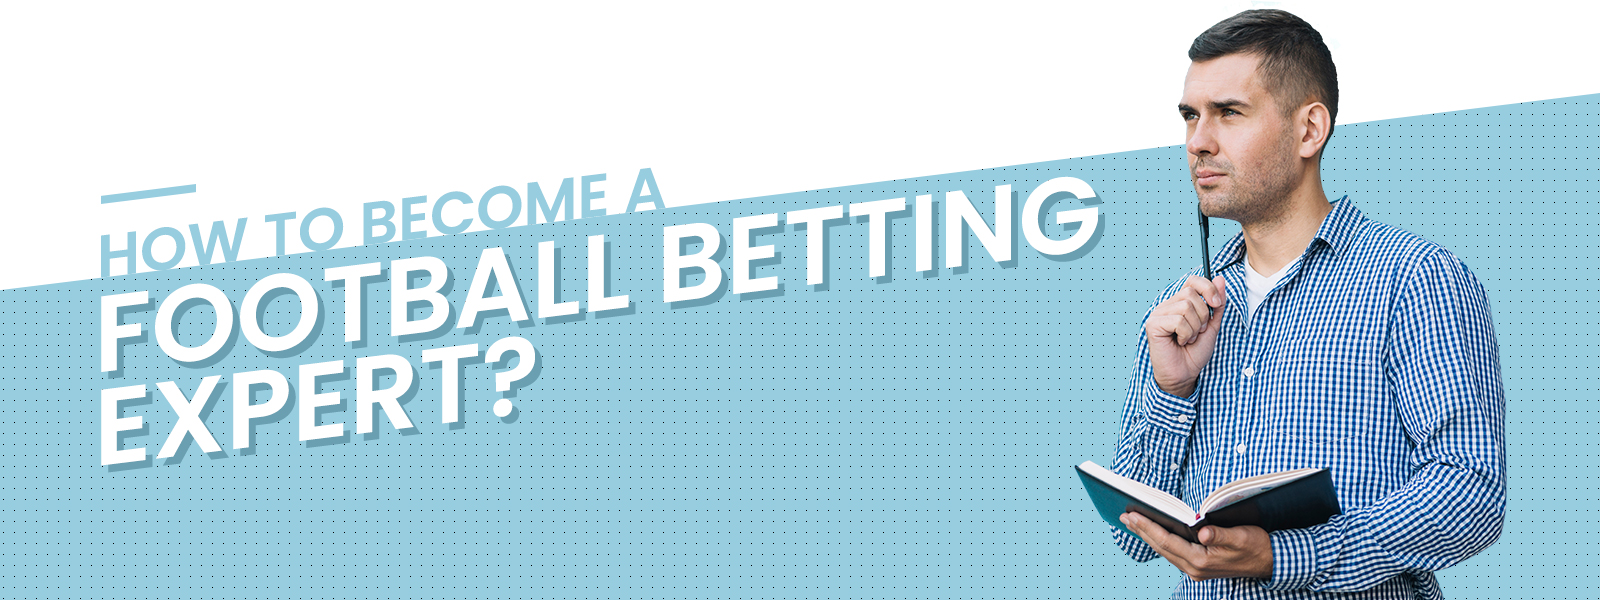 How To Become A Football Betting Expert?